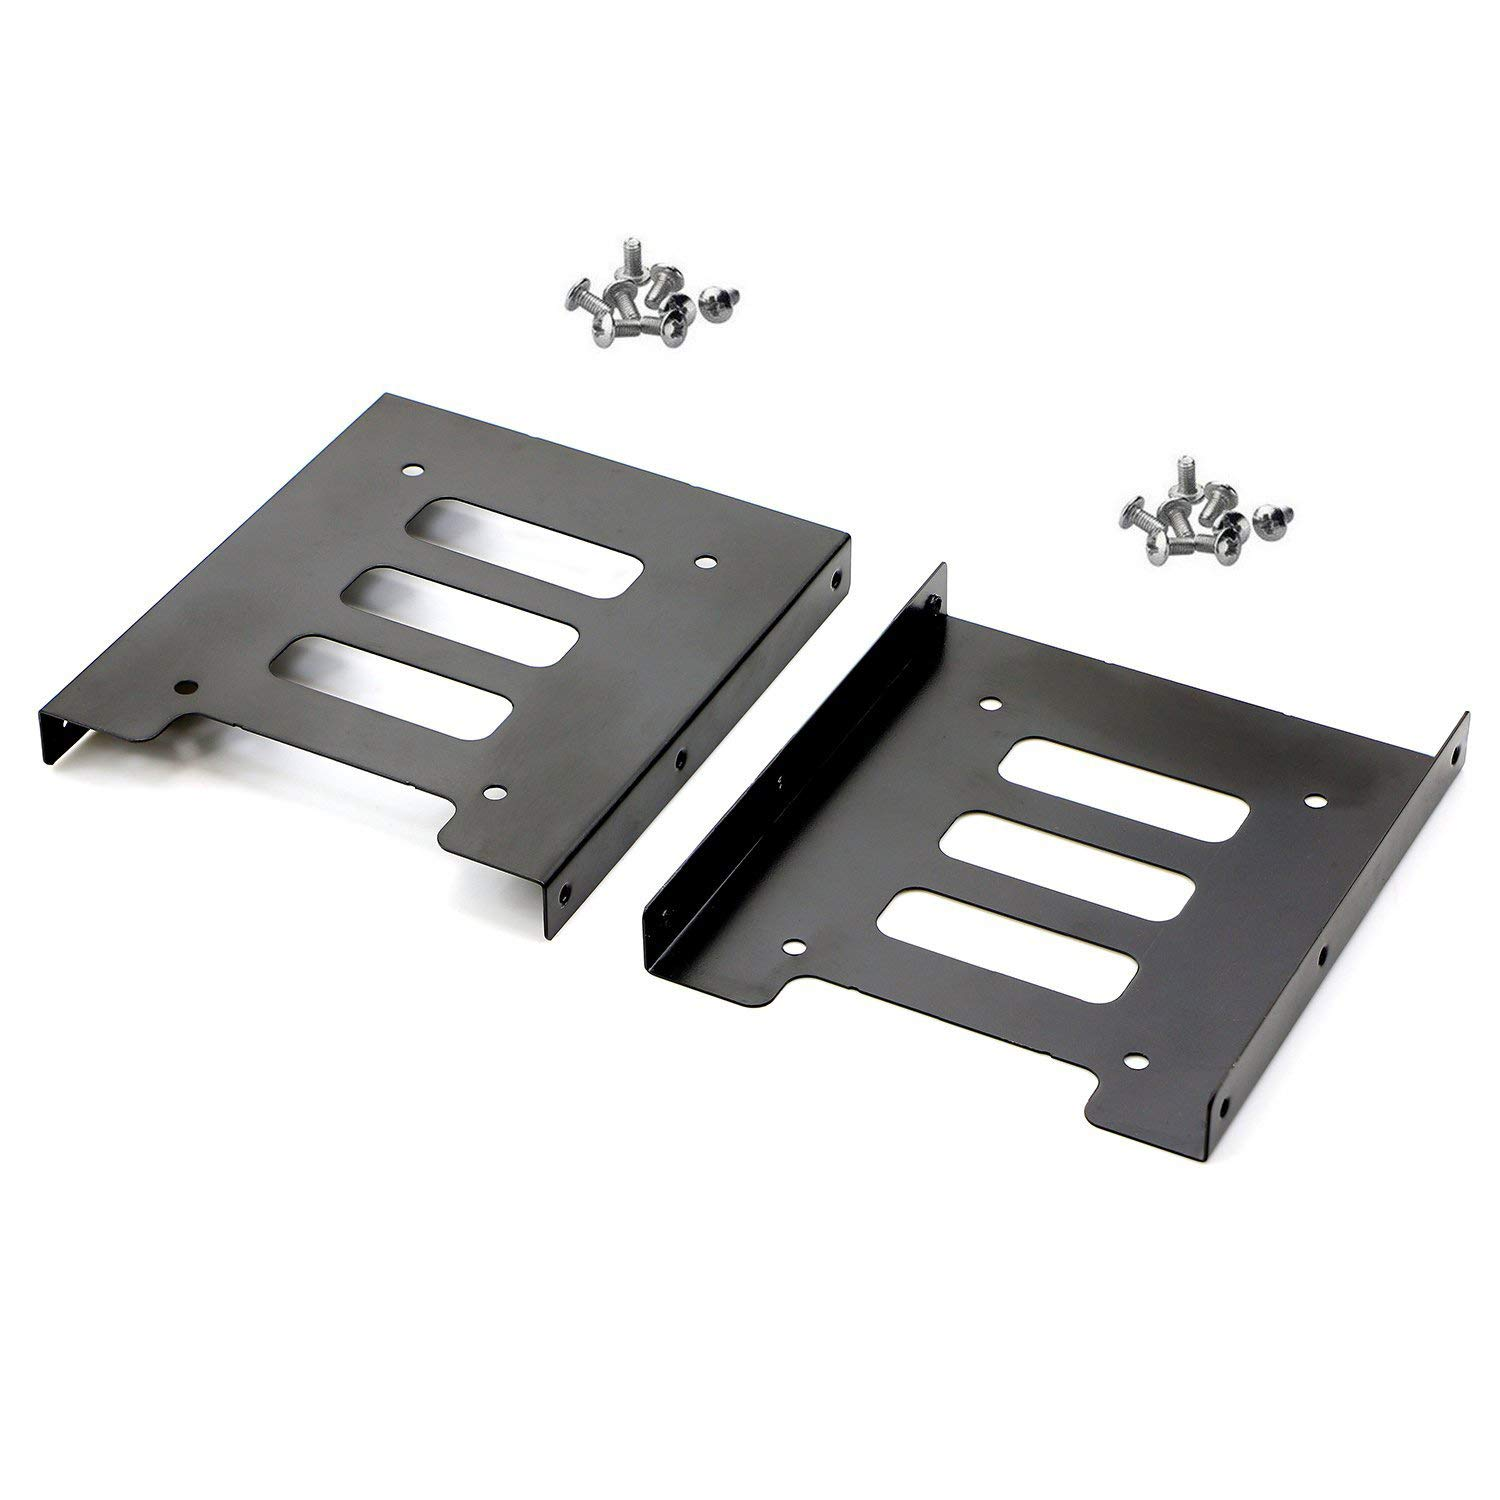 Pasow 2 Pack 2.5'' to 3.5'' SSD HDD Hard Disk Drive Bays Holder Metal Mounting Bracket Adapter for PC (Bracket) by PASOW (Image #1)